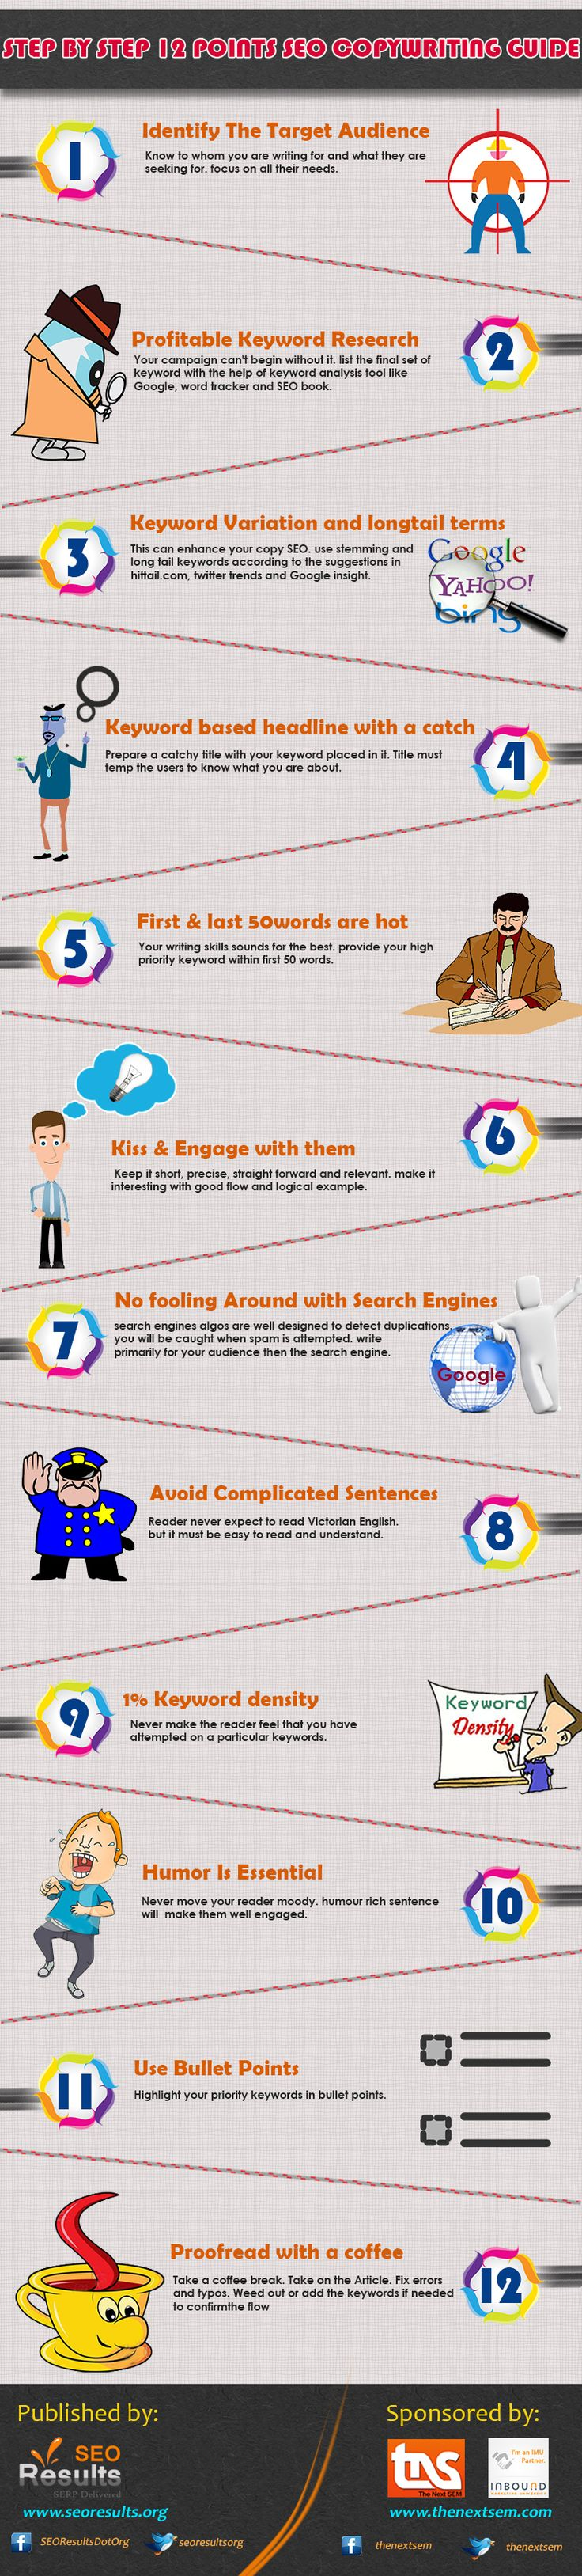 short and sweet resignation letter%0A SEO Copywriting Guide  iNFOGRAPHiCs MANiA